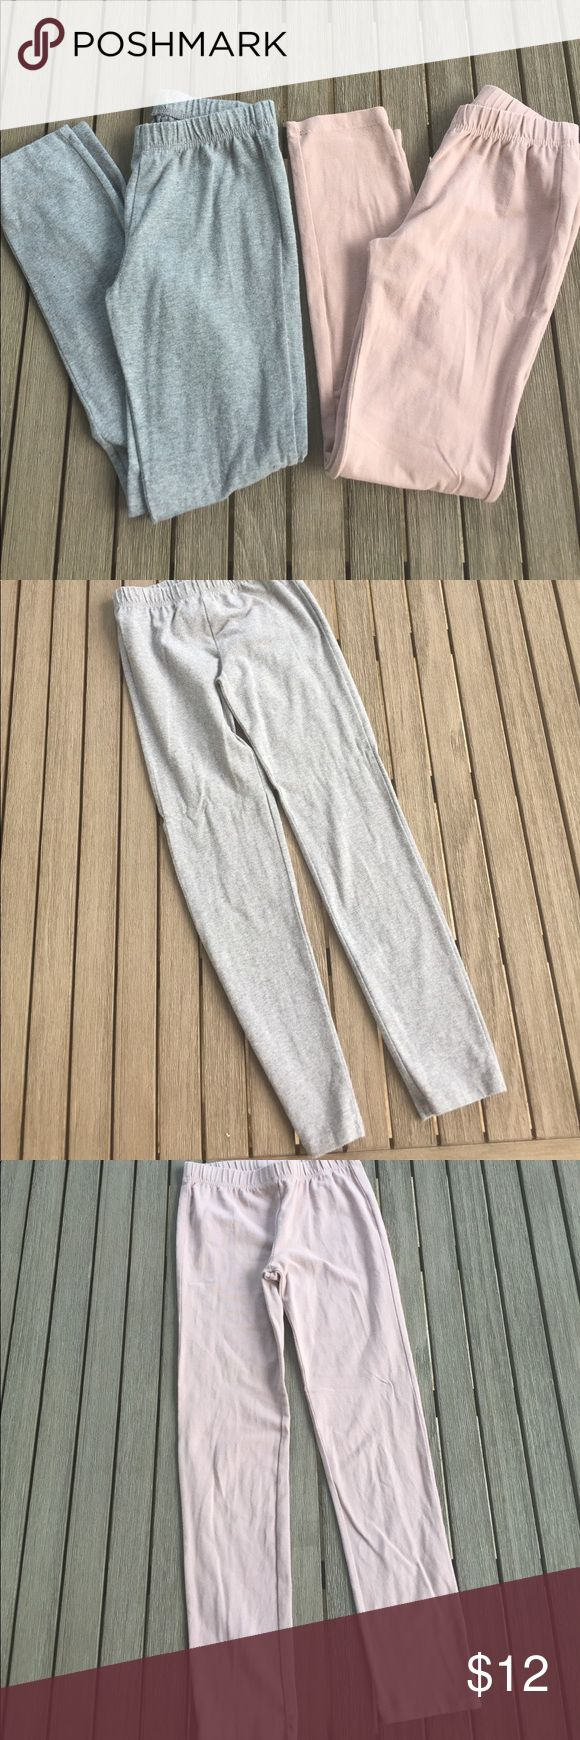 Lot of Gap Neutral Leggings Gap Kids size M (8) Leggings in medium grey and blush/taupe color. Both in good used condition only showing signs of wash and wear no other flaws. Great neutral colored basics to wear under tunics or dresses! Price firm unless bundled on all items under $10 GAP Bottoms Leggings